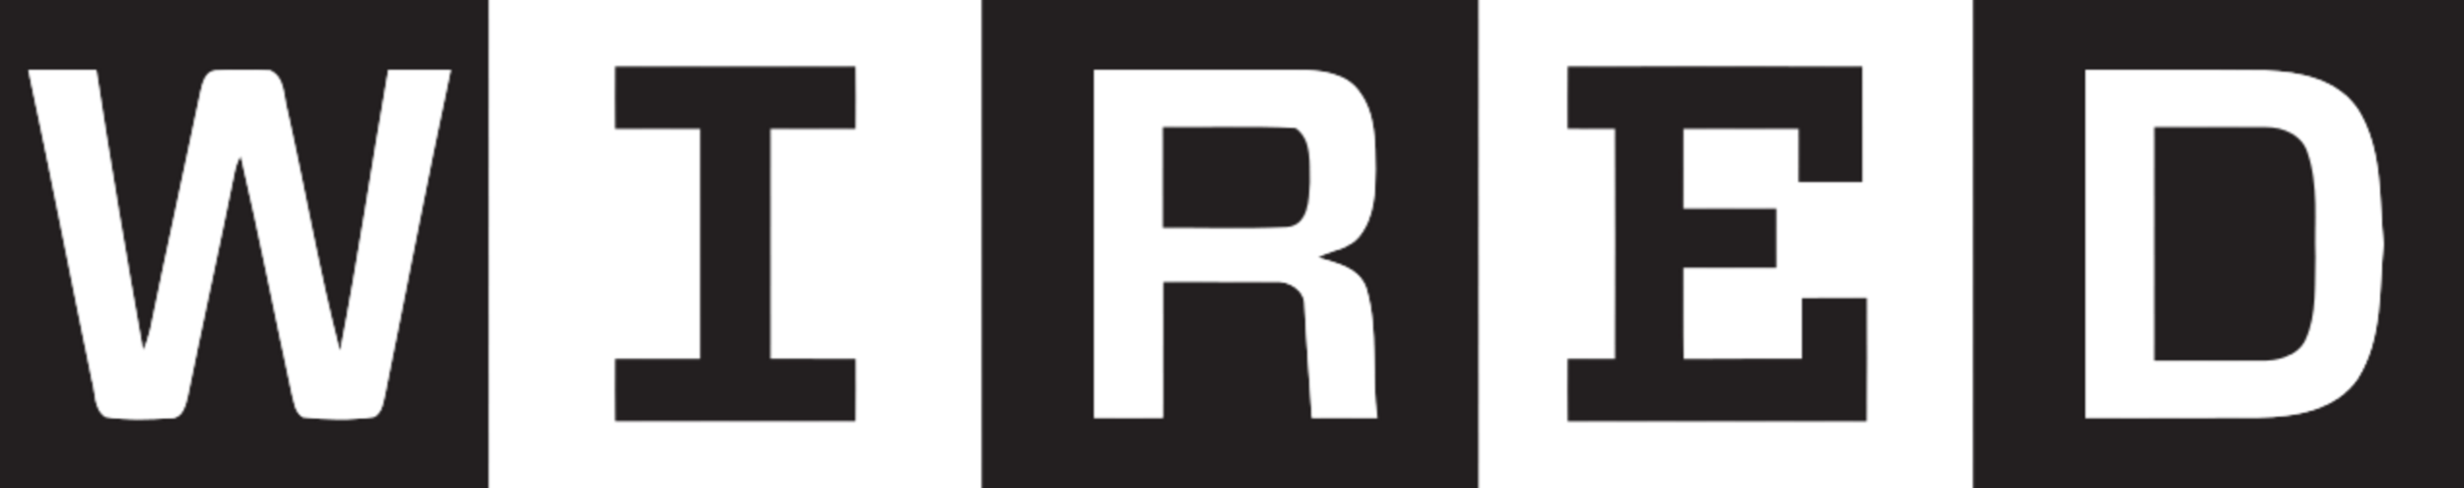 Teamtailor Featured in Wired as Hottest Startup